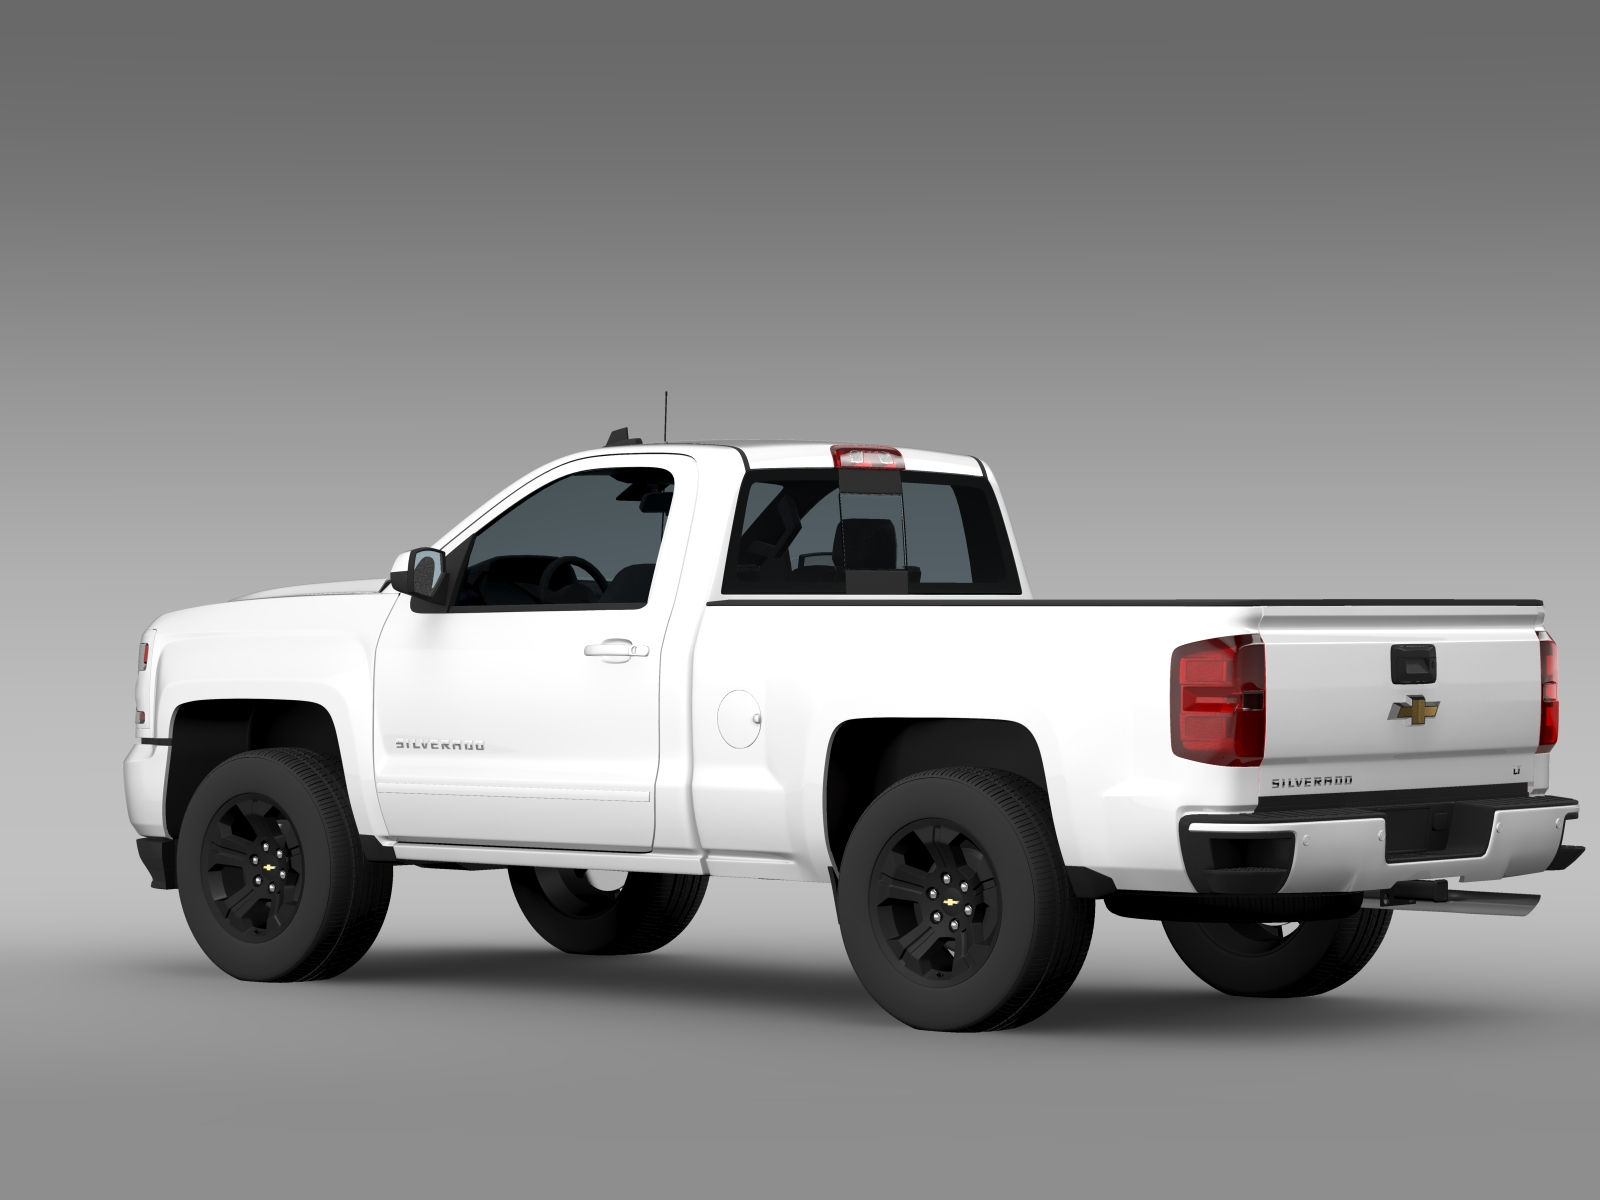 Chevrolet Silverado Lt Z71 Regular Cab Gmtk2 Standart Box 2016 Ocean Item For 1 Jpg 10 11 12 13 14 15 17 18 19